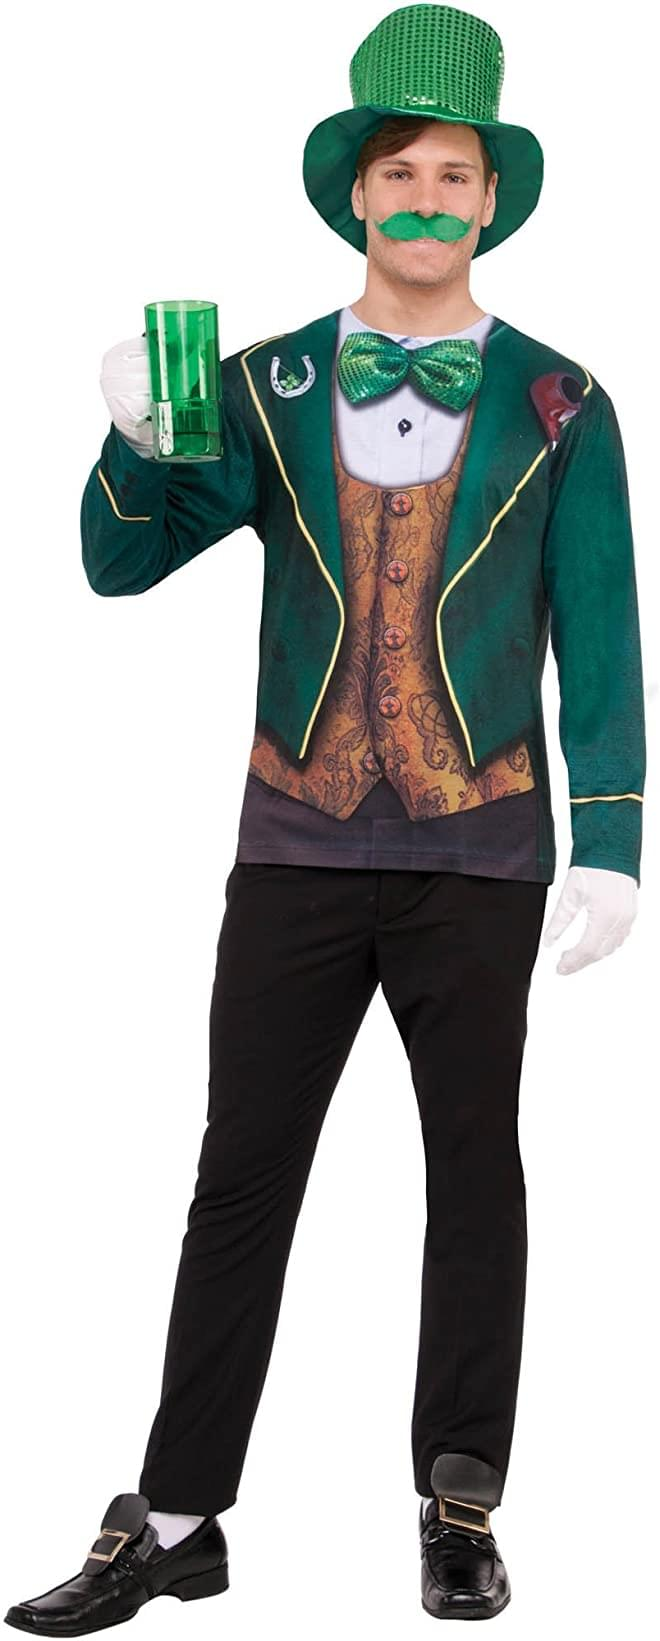 3D Instantly Irish Photo-Real Printed Adult Costume Top | One Size